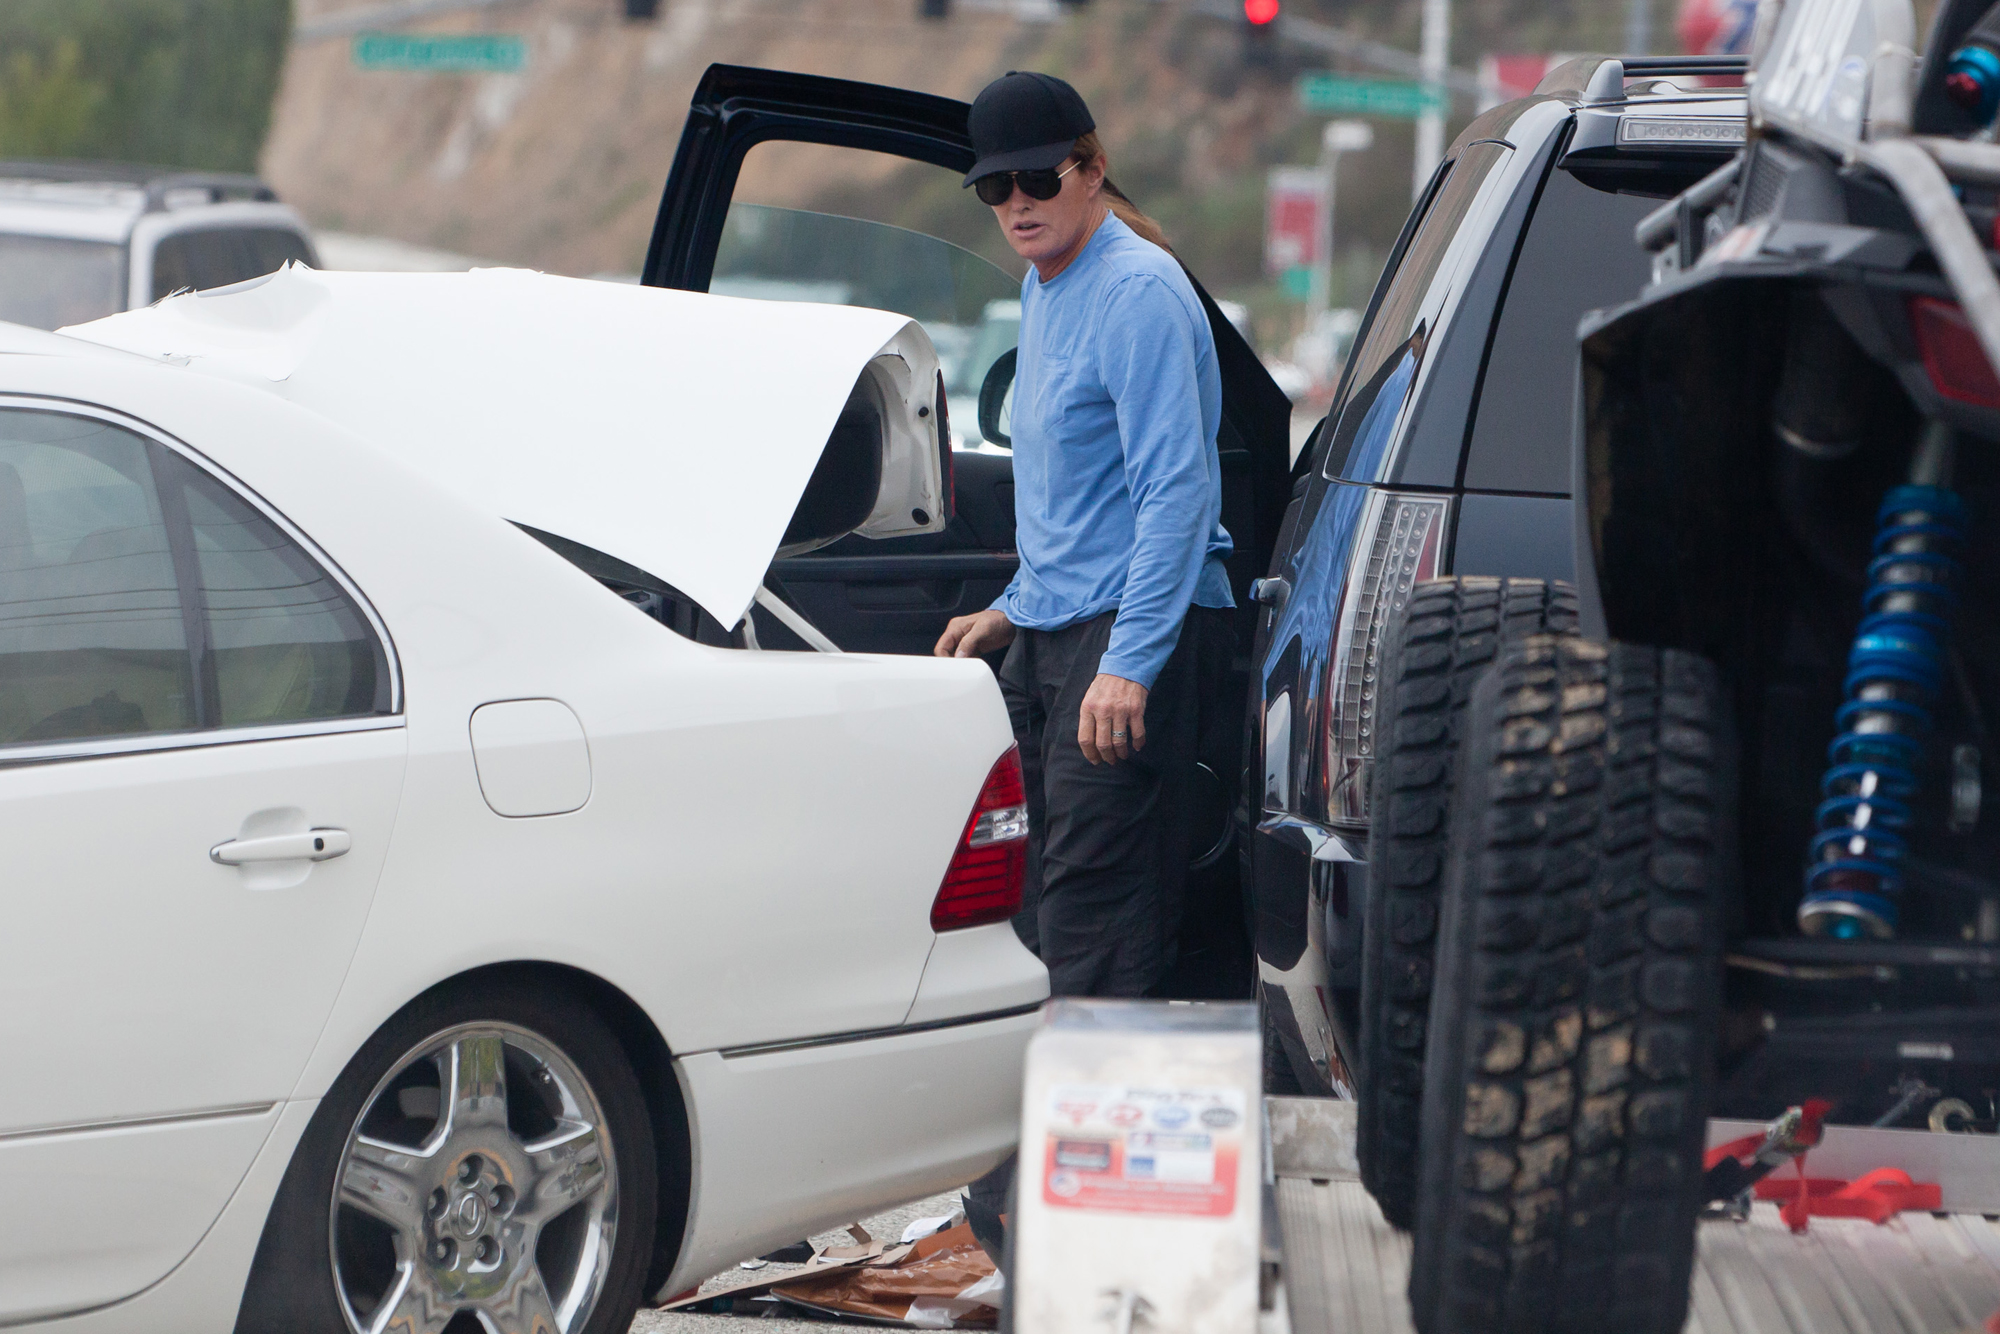 EXCLUSIVE TO INF. **PREMIUM RATES APPLY**STRICTLY NO WEB UNTIL 130am PST FEB 8th** Bruce Jenner In a Car Accident - Moment of Impact